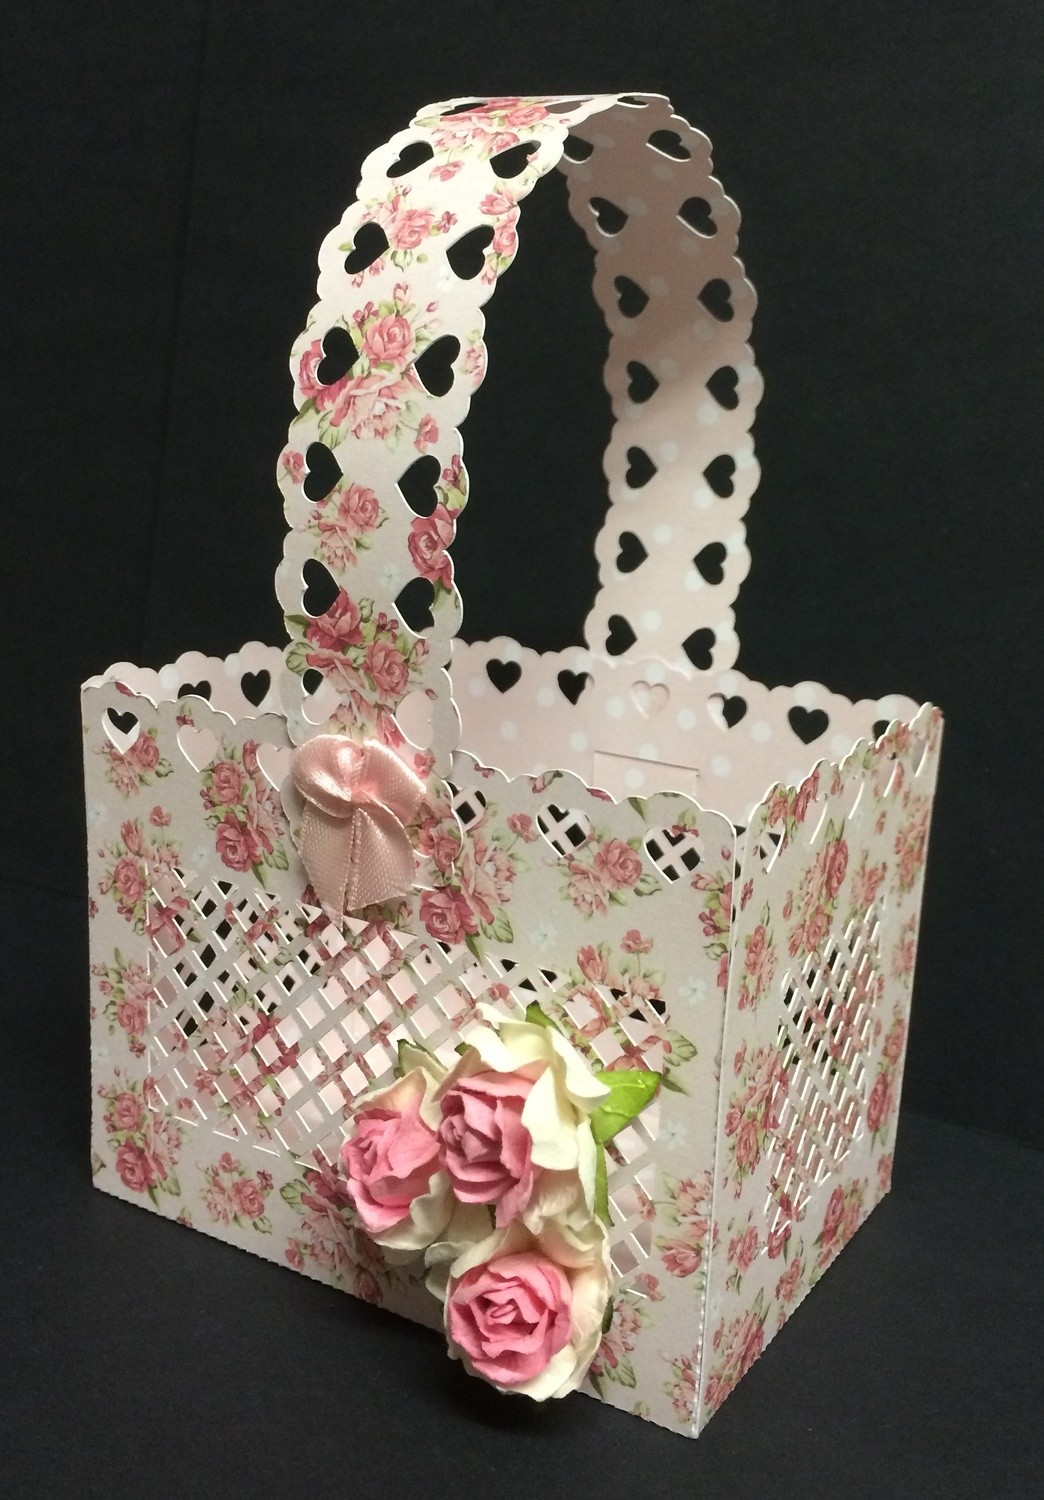 Gift Basket - includes a gift box to put it in